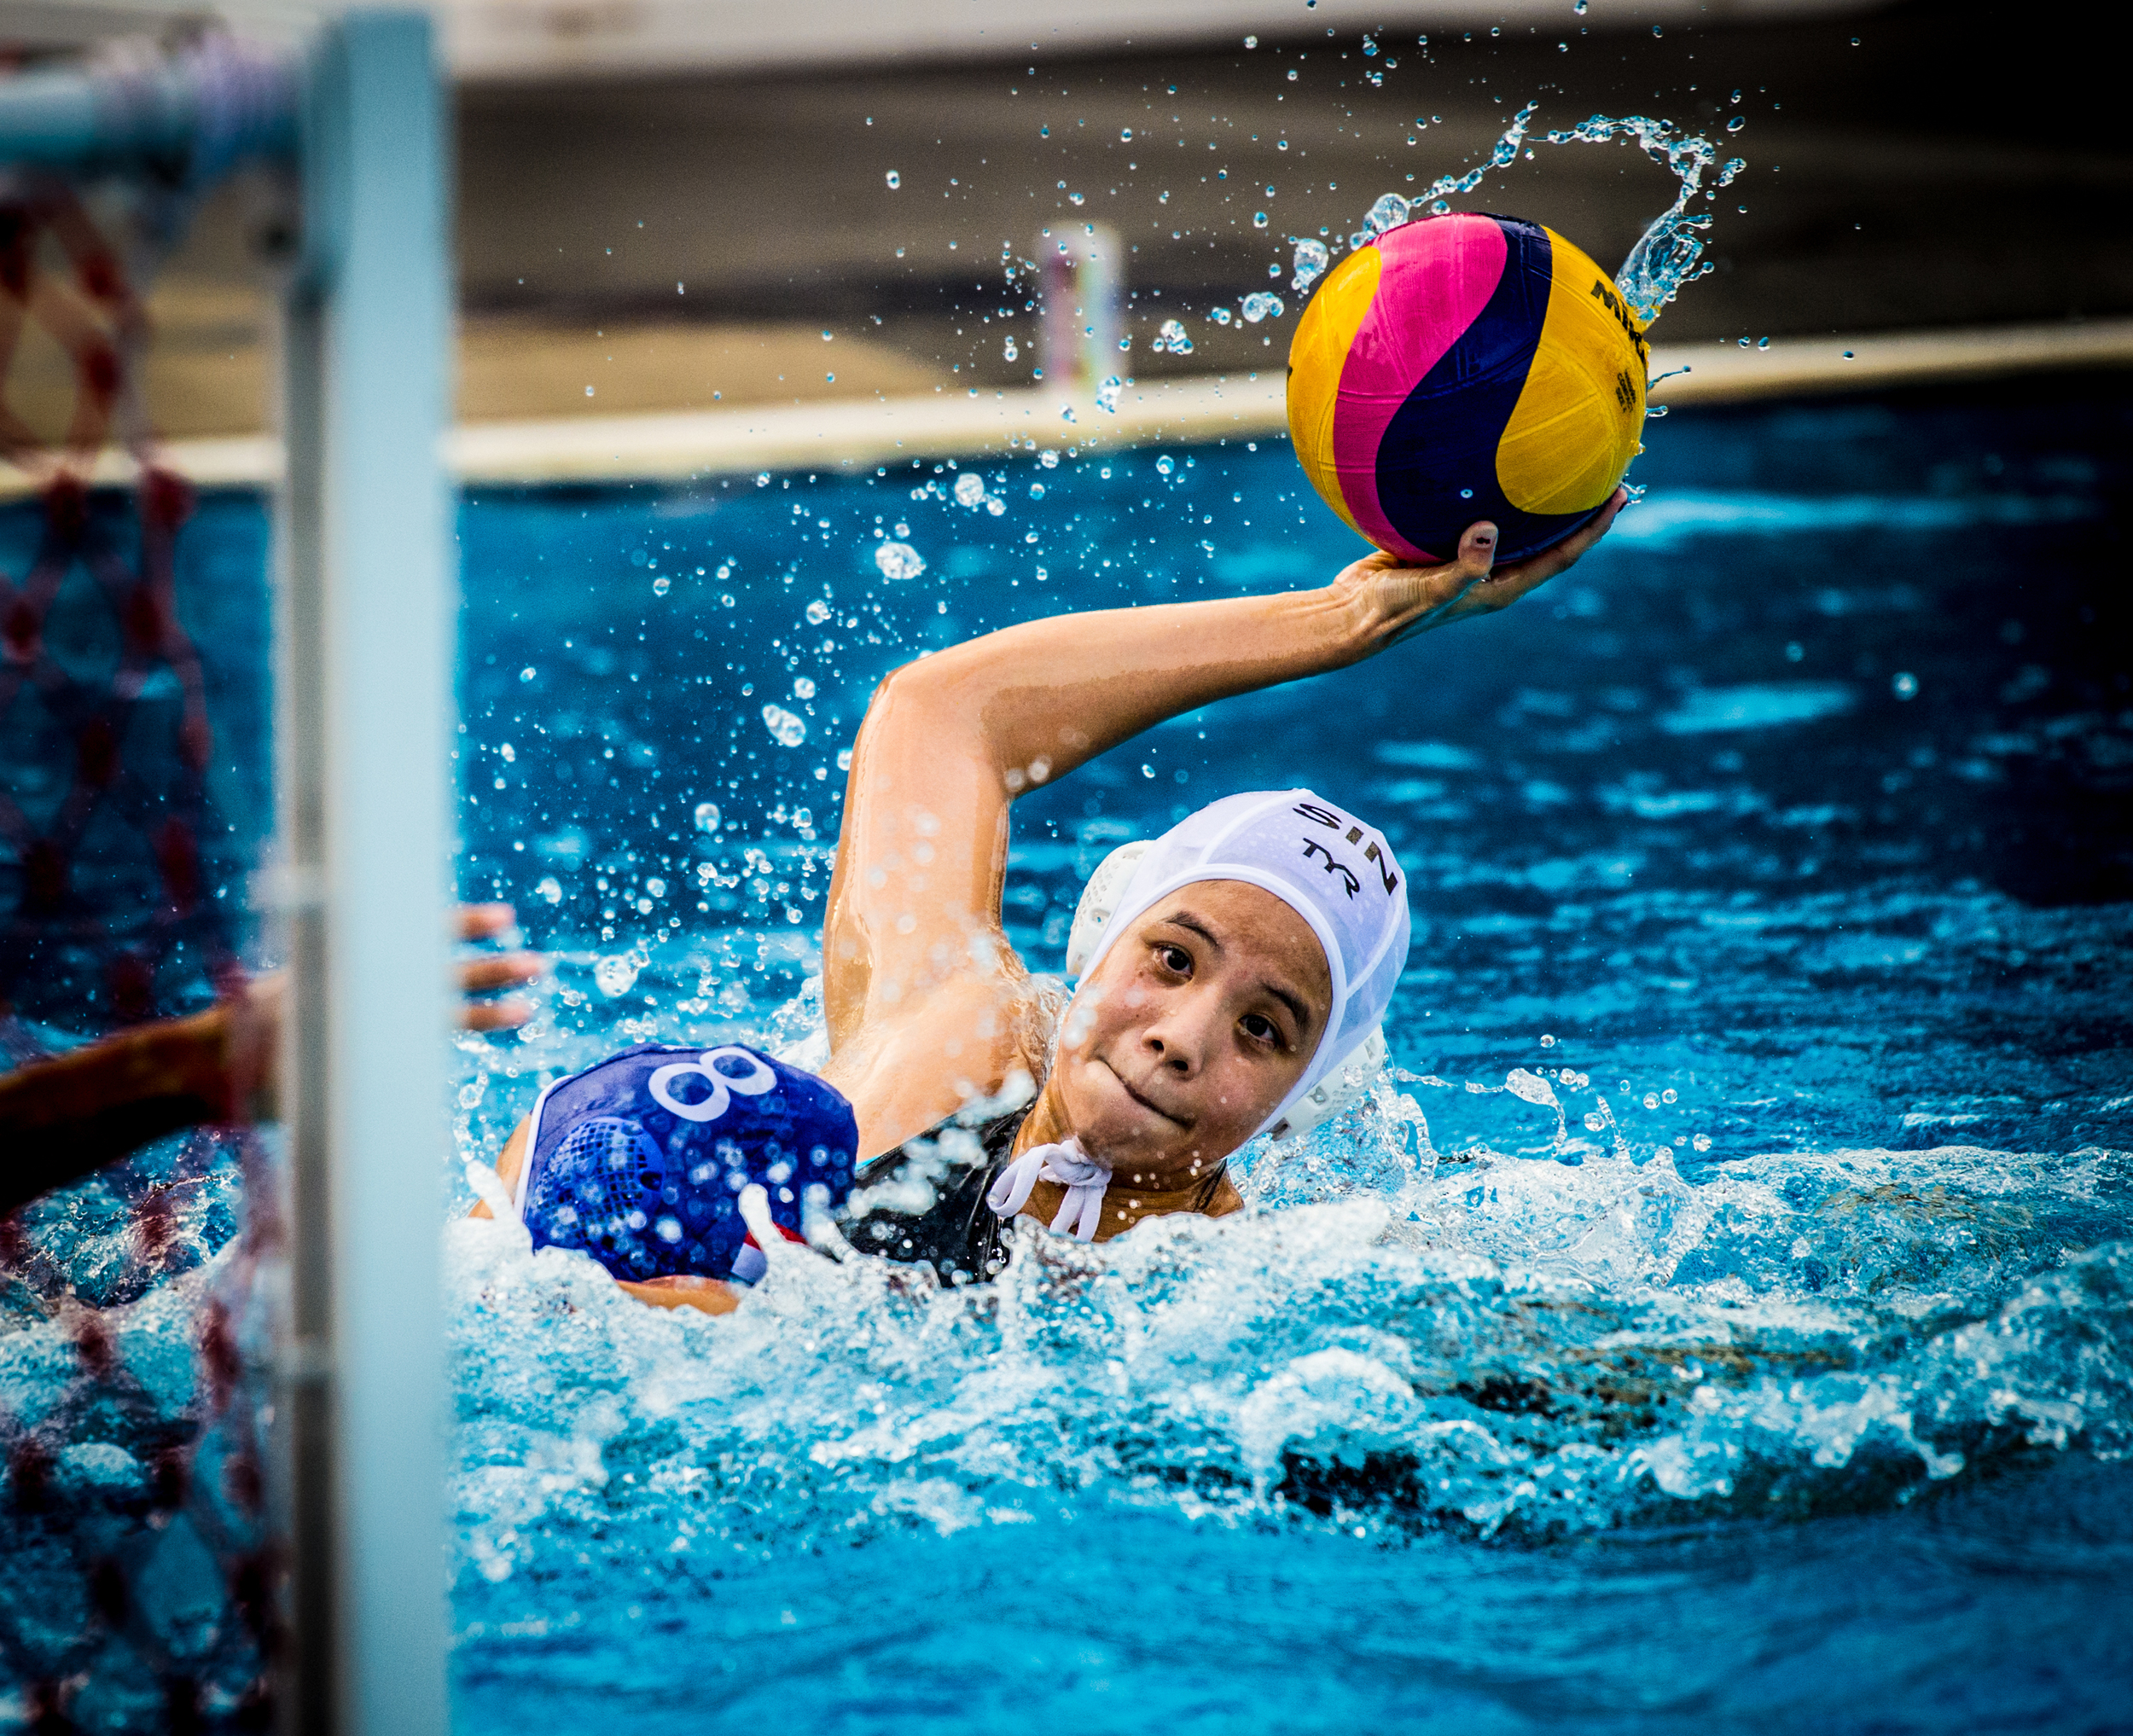 A Singaporean player prepares to take a shot during a match at the Toa Payoh Swimming Complex.